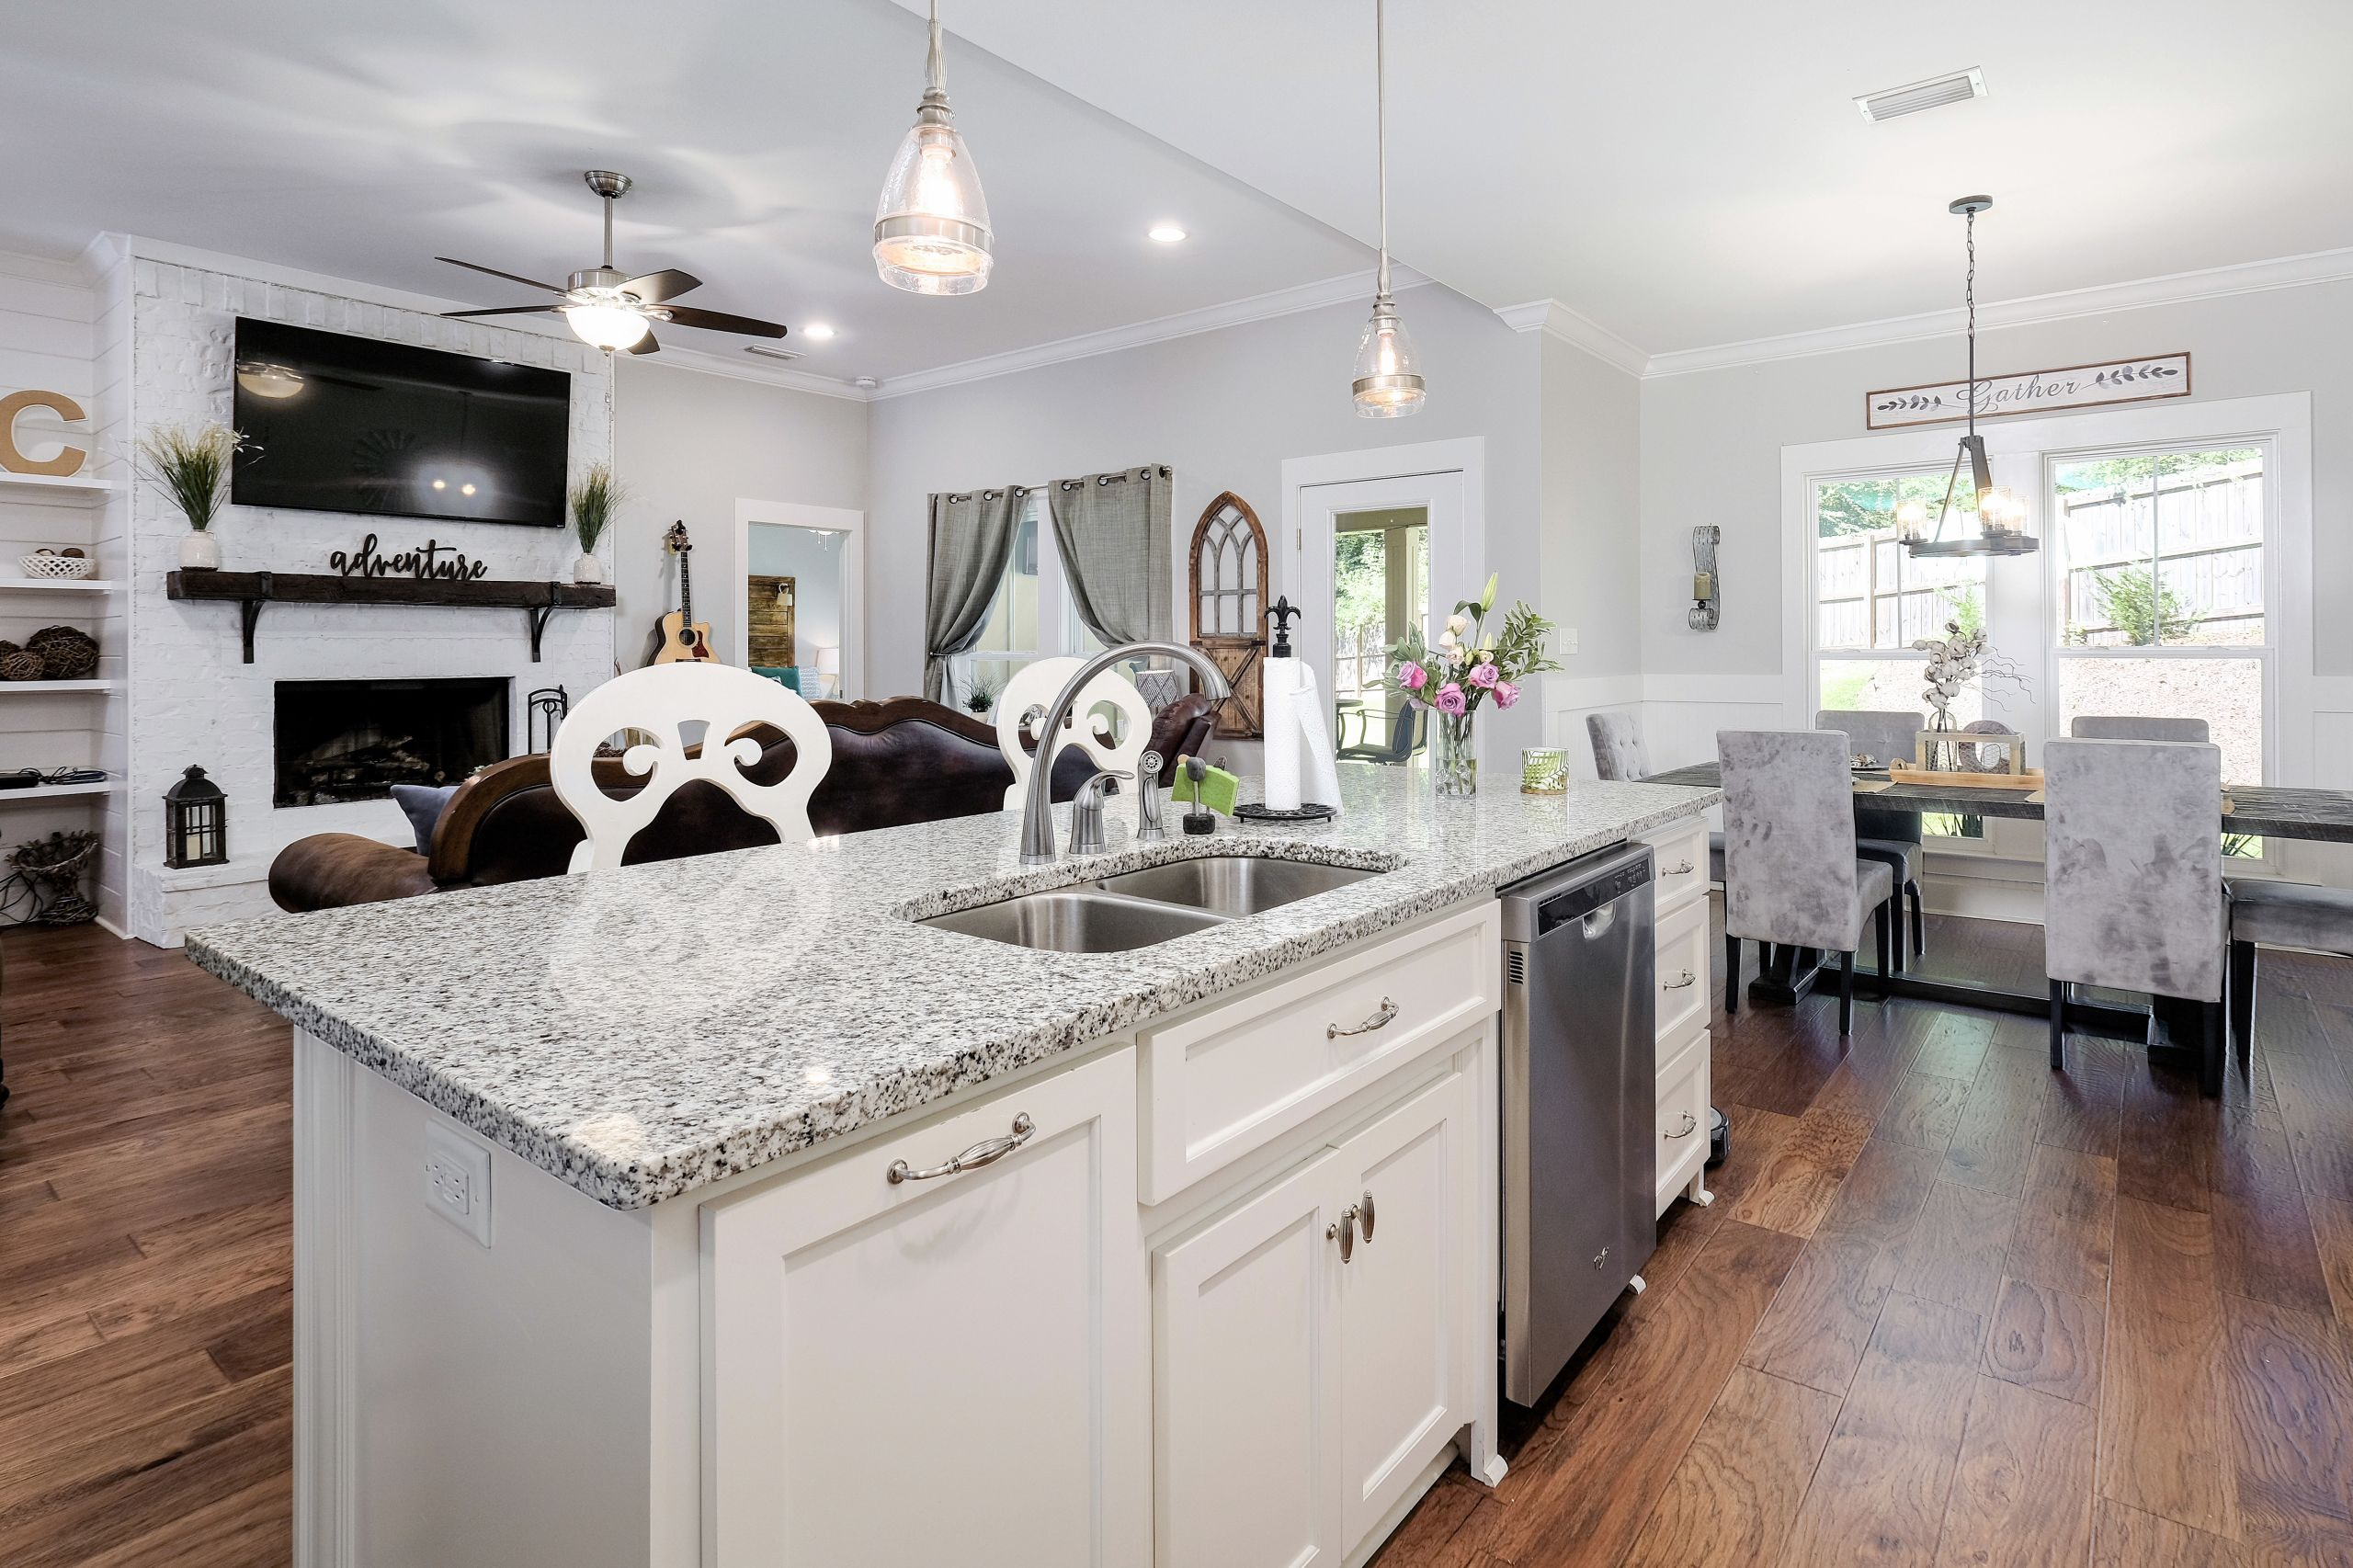 Home sold in Daphne, Alabama Q3, 2019